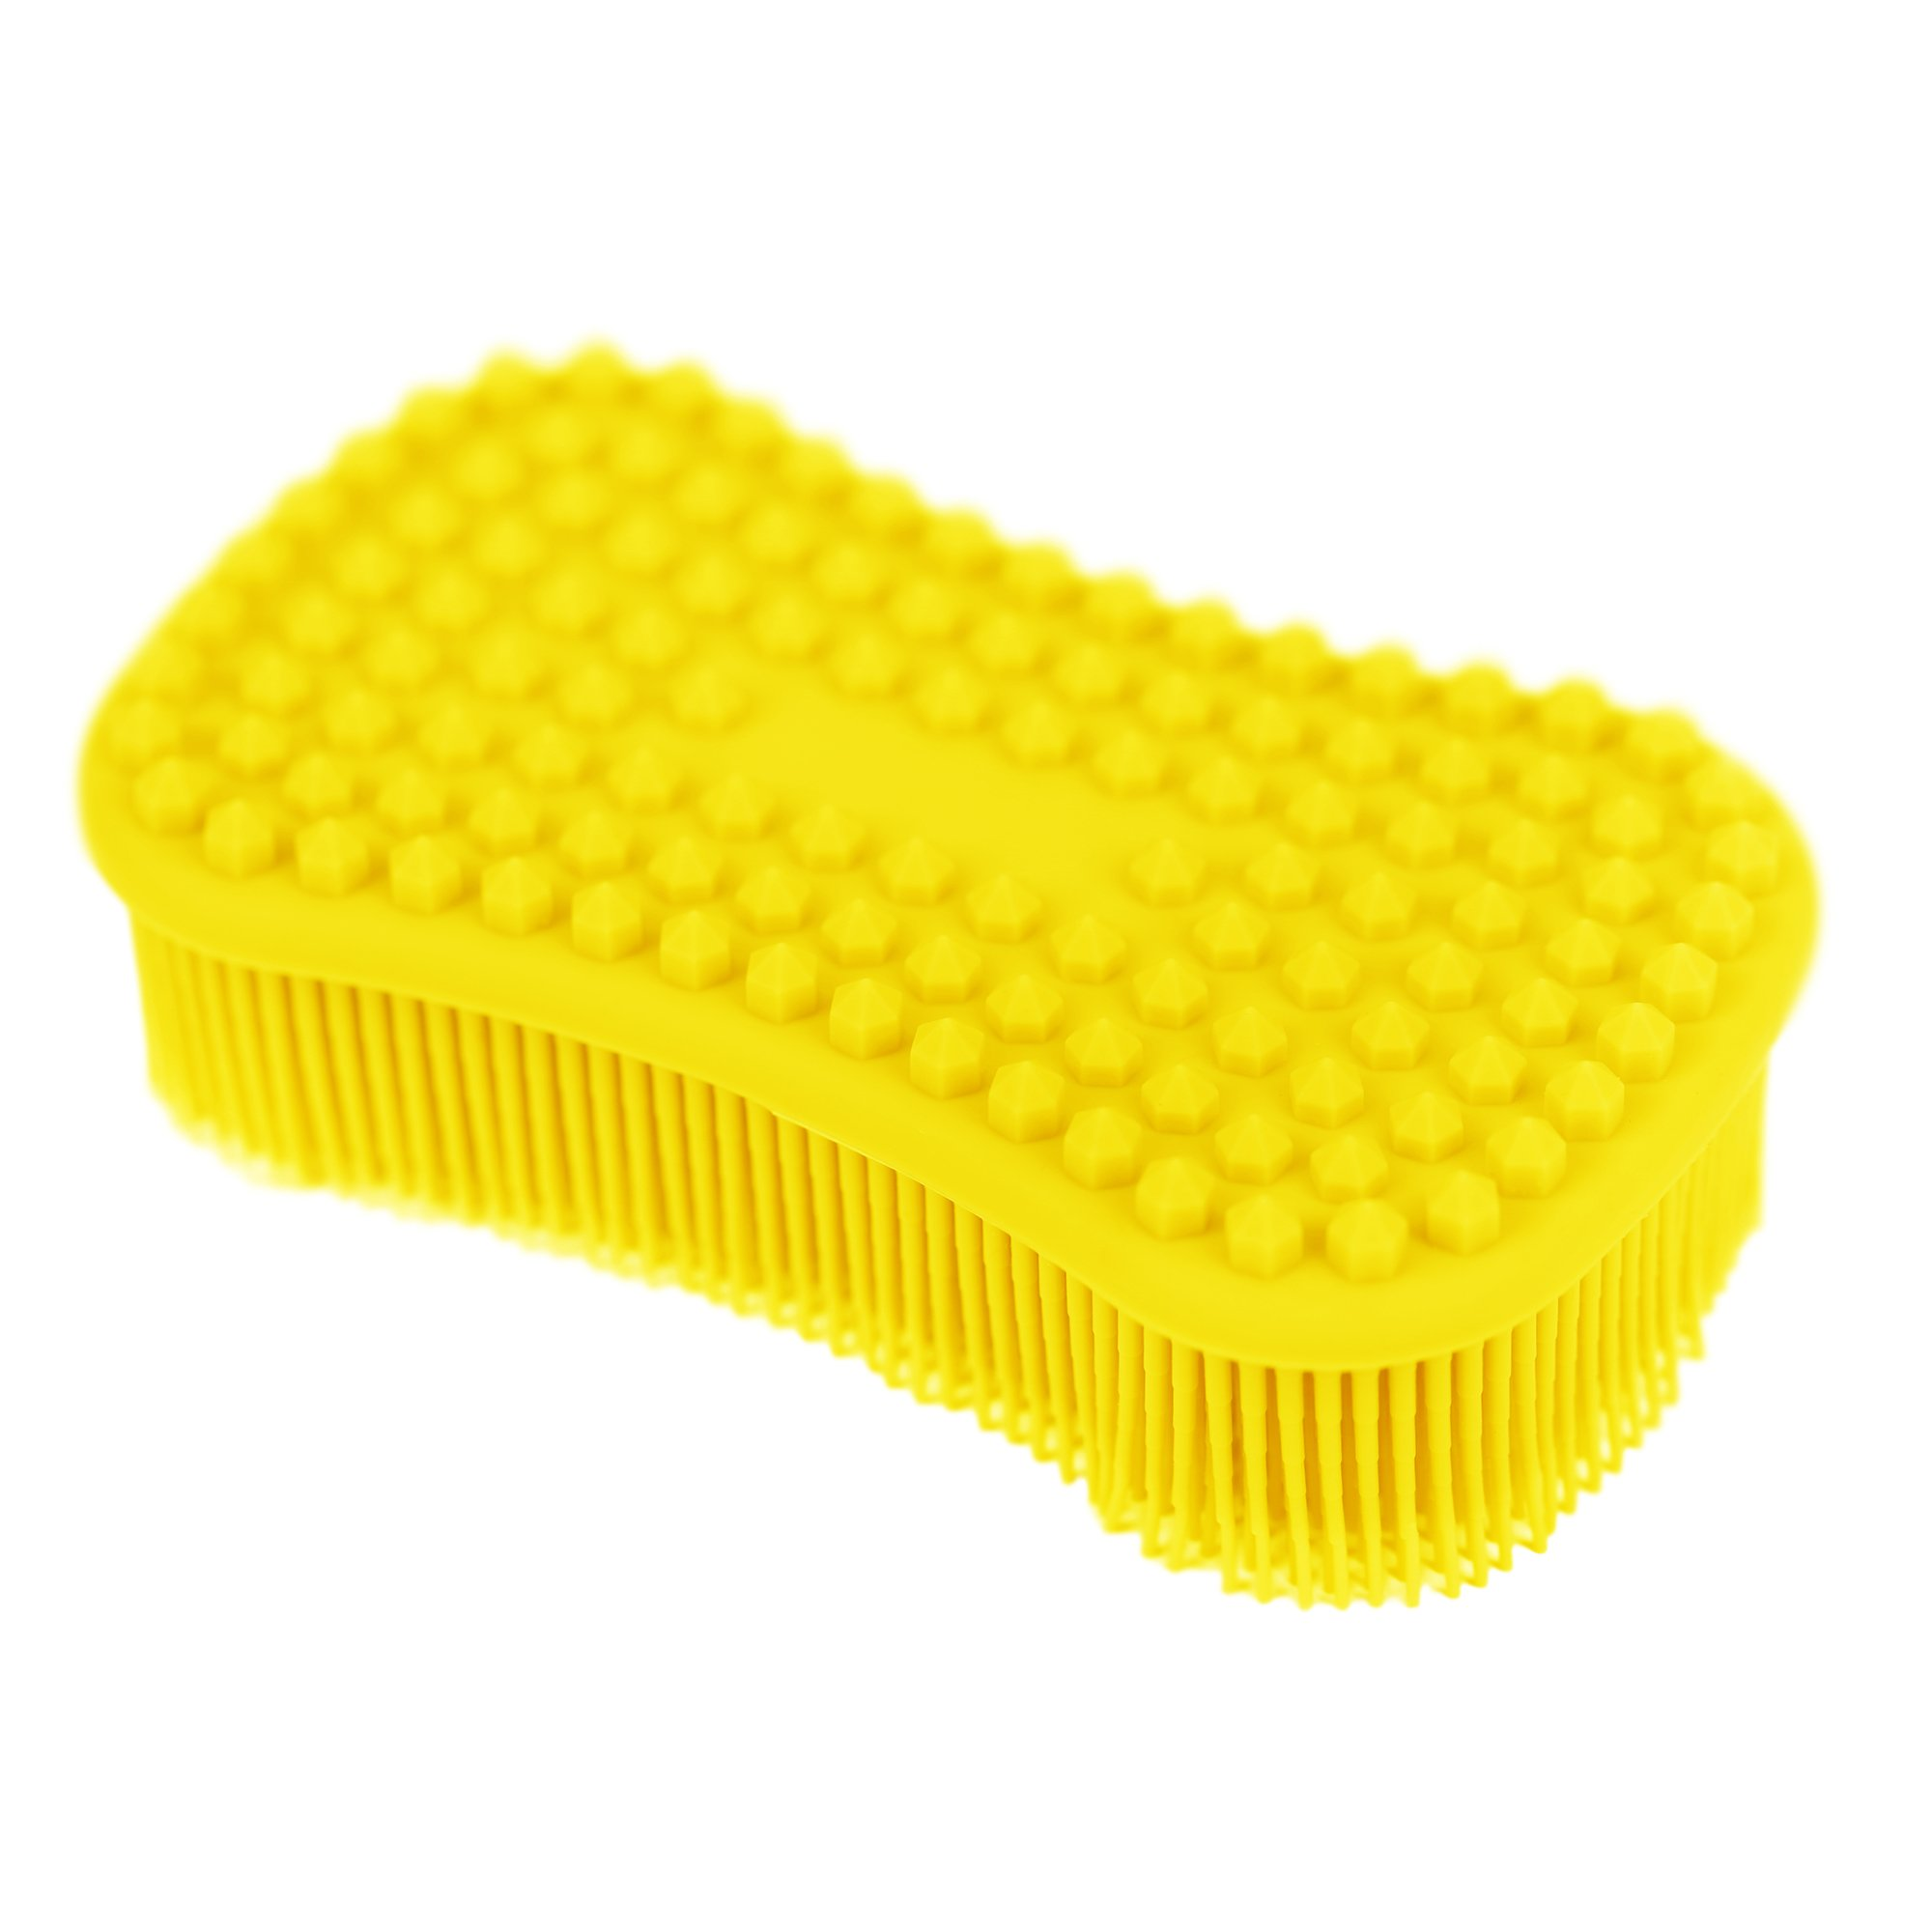 ELFRhino Bath Sponge 2 in 1 Silicone Shower Brush Natural Bristle Massager Brush Gentle Scrub Skin Exfoliation for Face and Body Massage Nubs Improve Cellulite Yellow